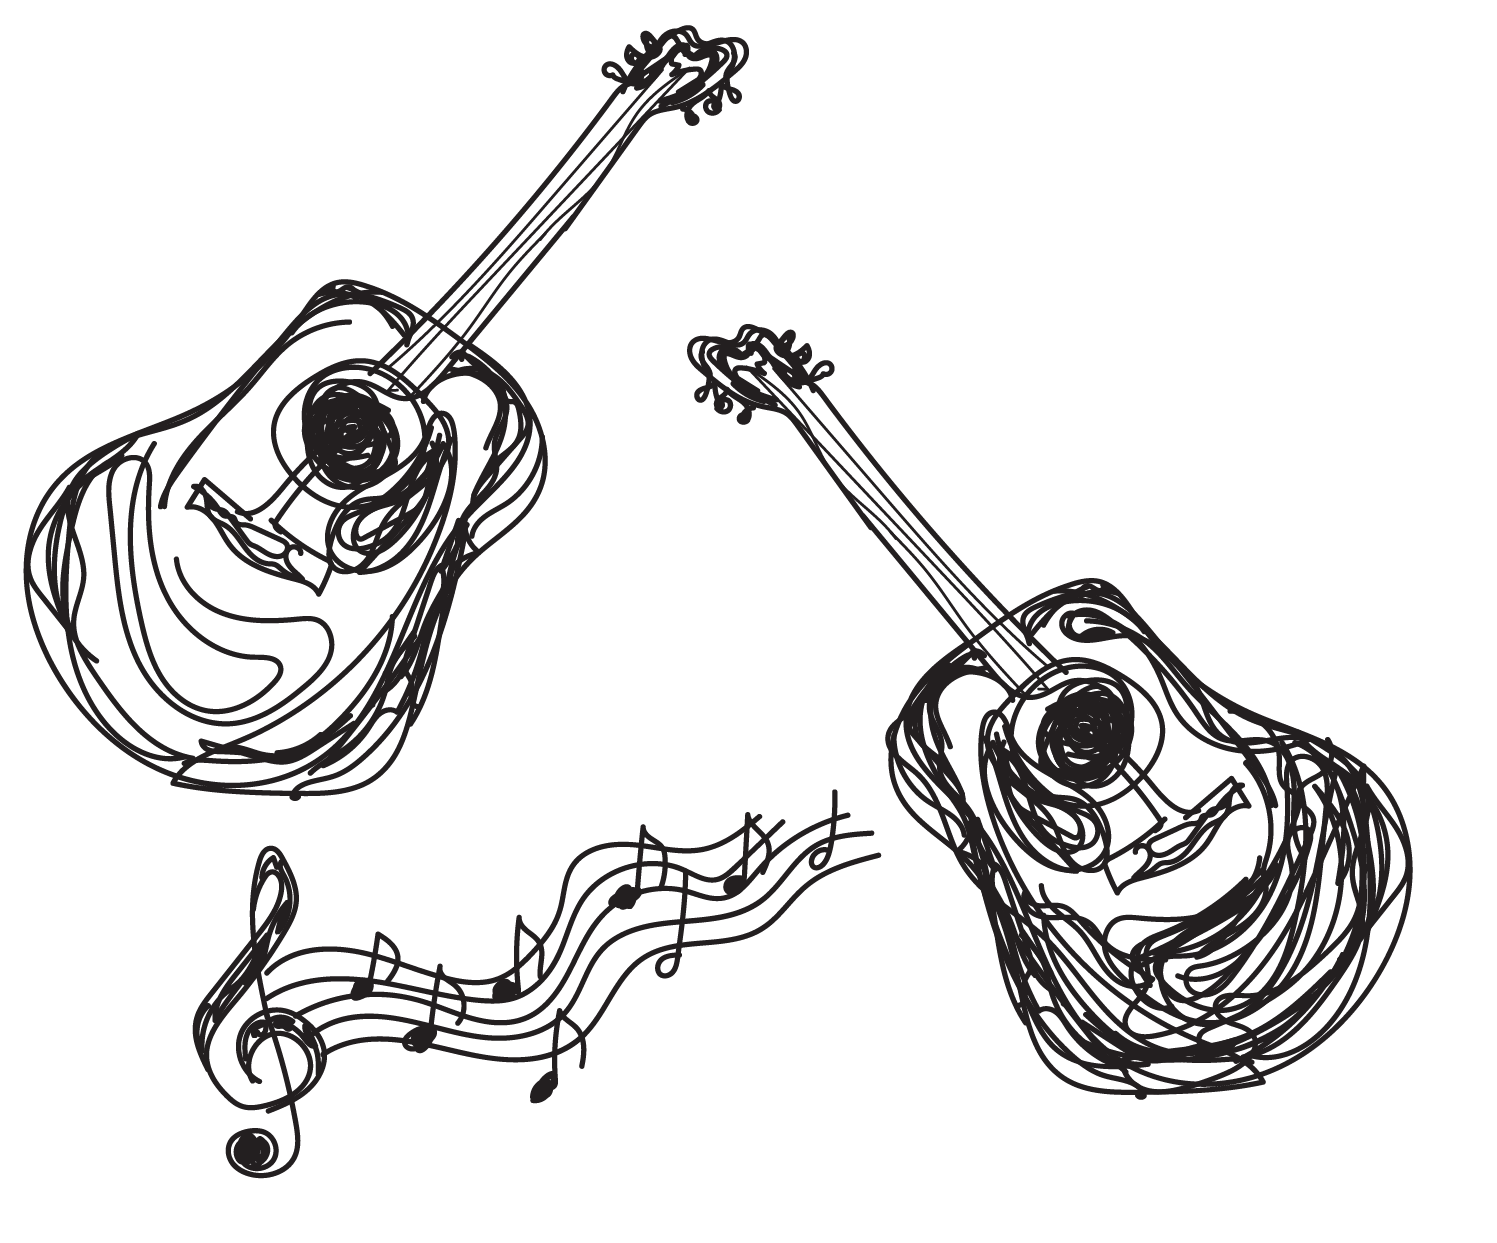 sketch of two guitars and music notes